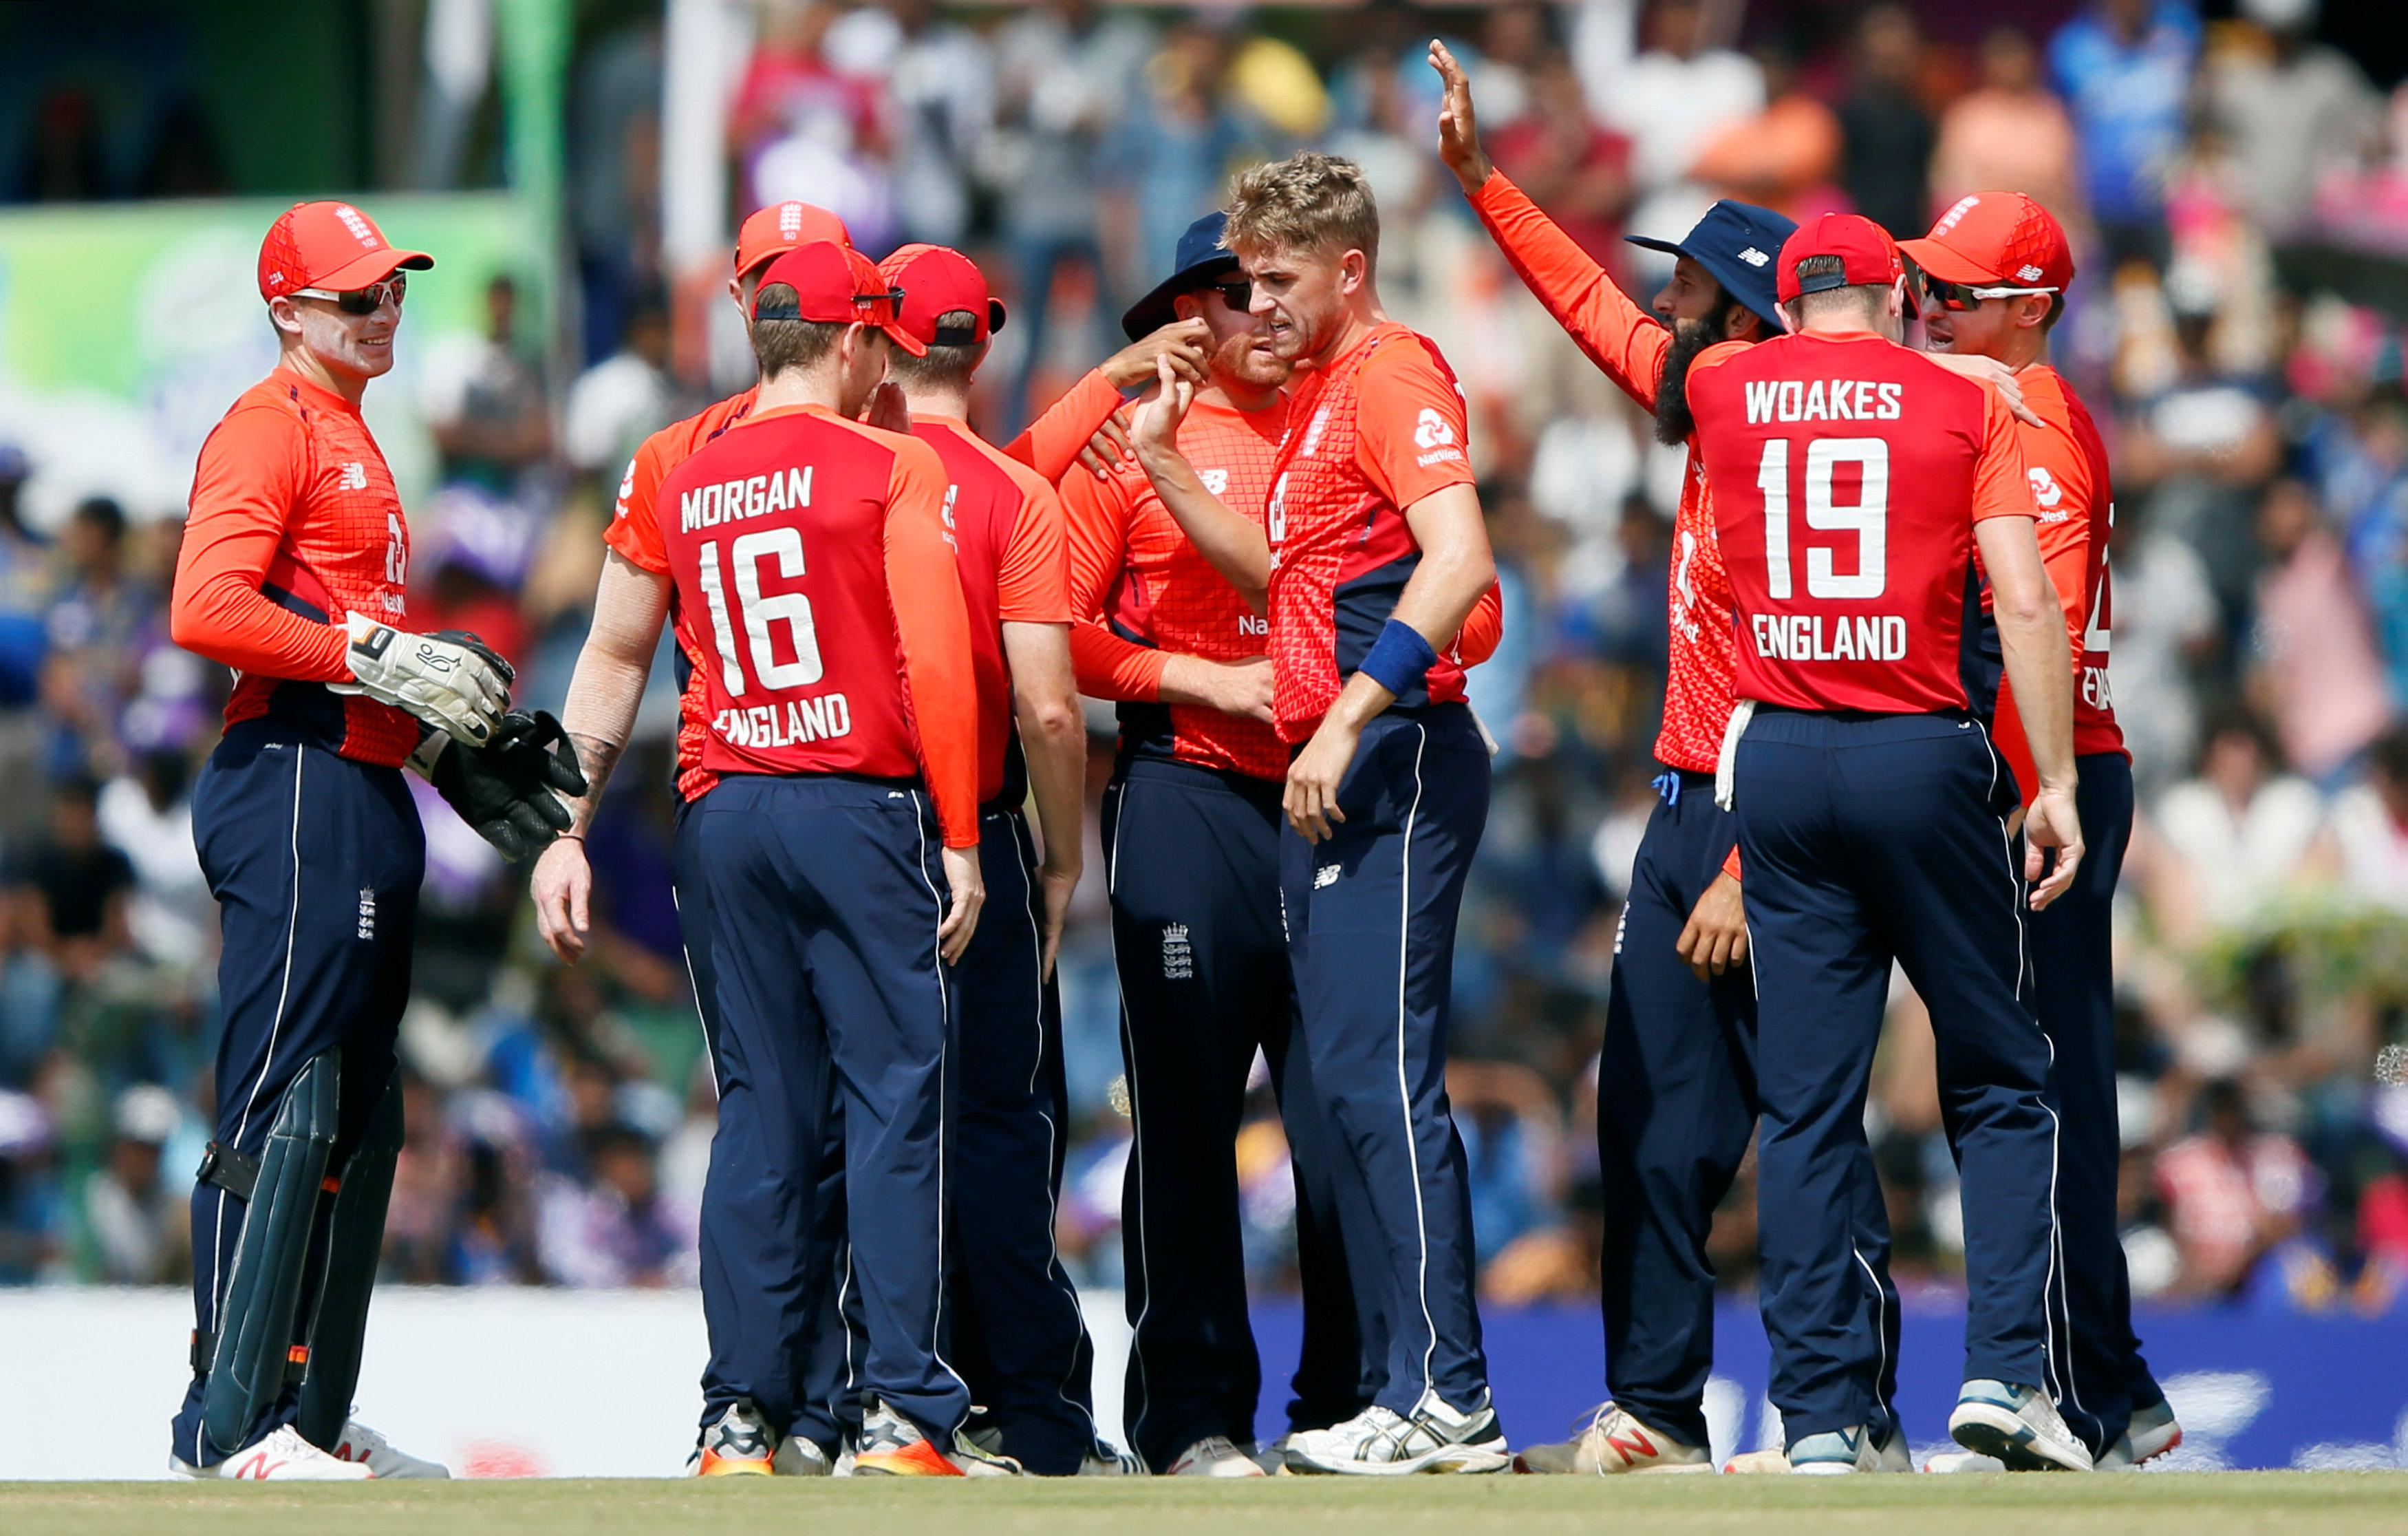 Olly Stone reacts with his team-mates after dismissing Niroshan Dickwella